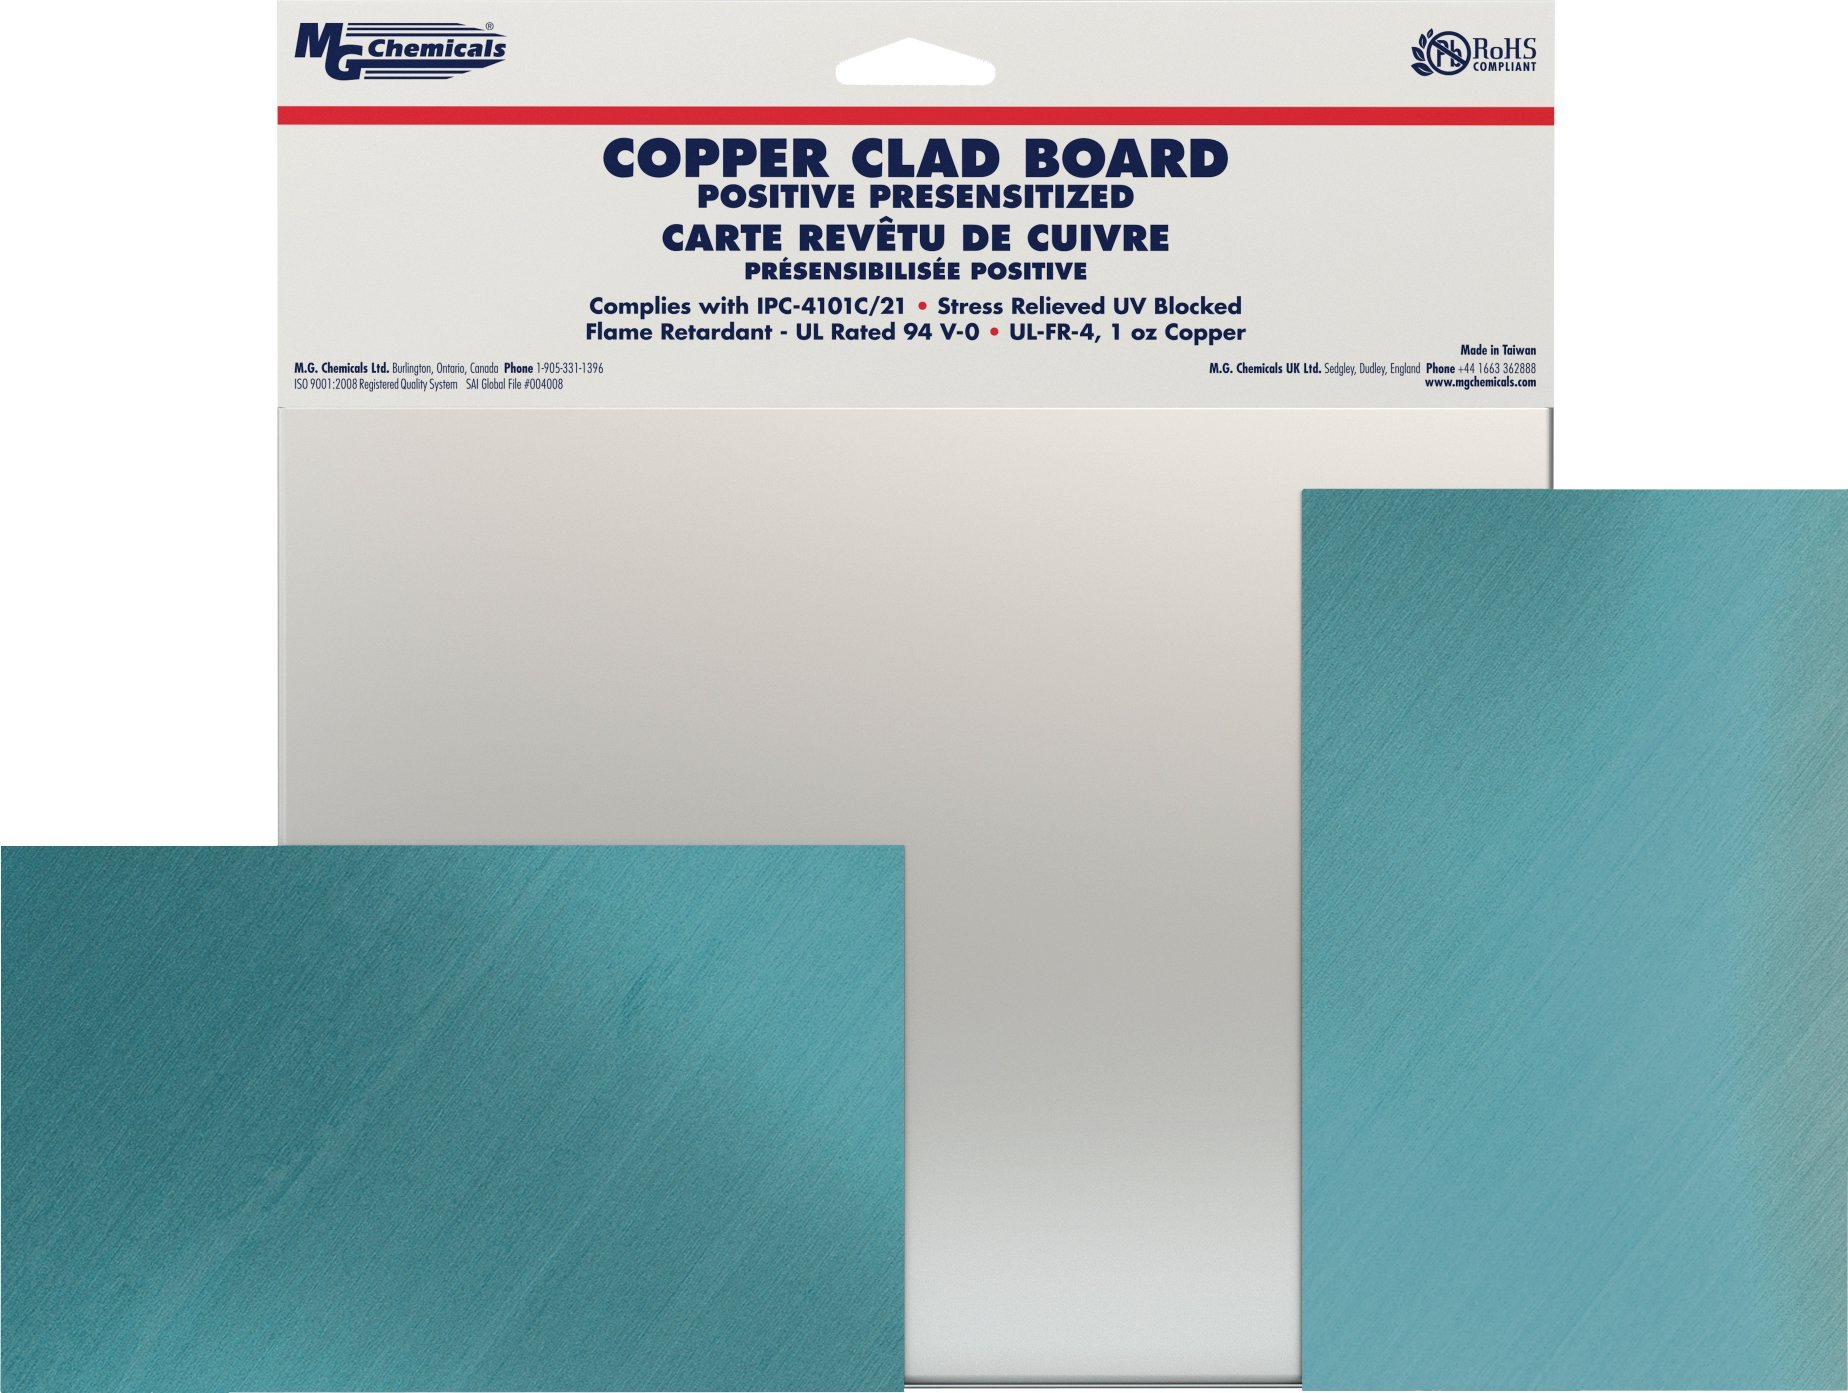 MG Chemicals 660 Positive Presensitized Copper Clad Board, Double Sided, 9'' x 6'', 1 oz Copper, 1/16'' Thick, FR4